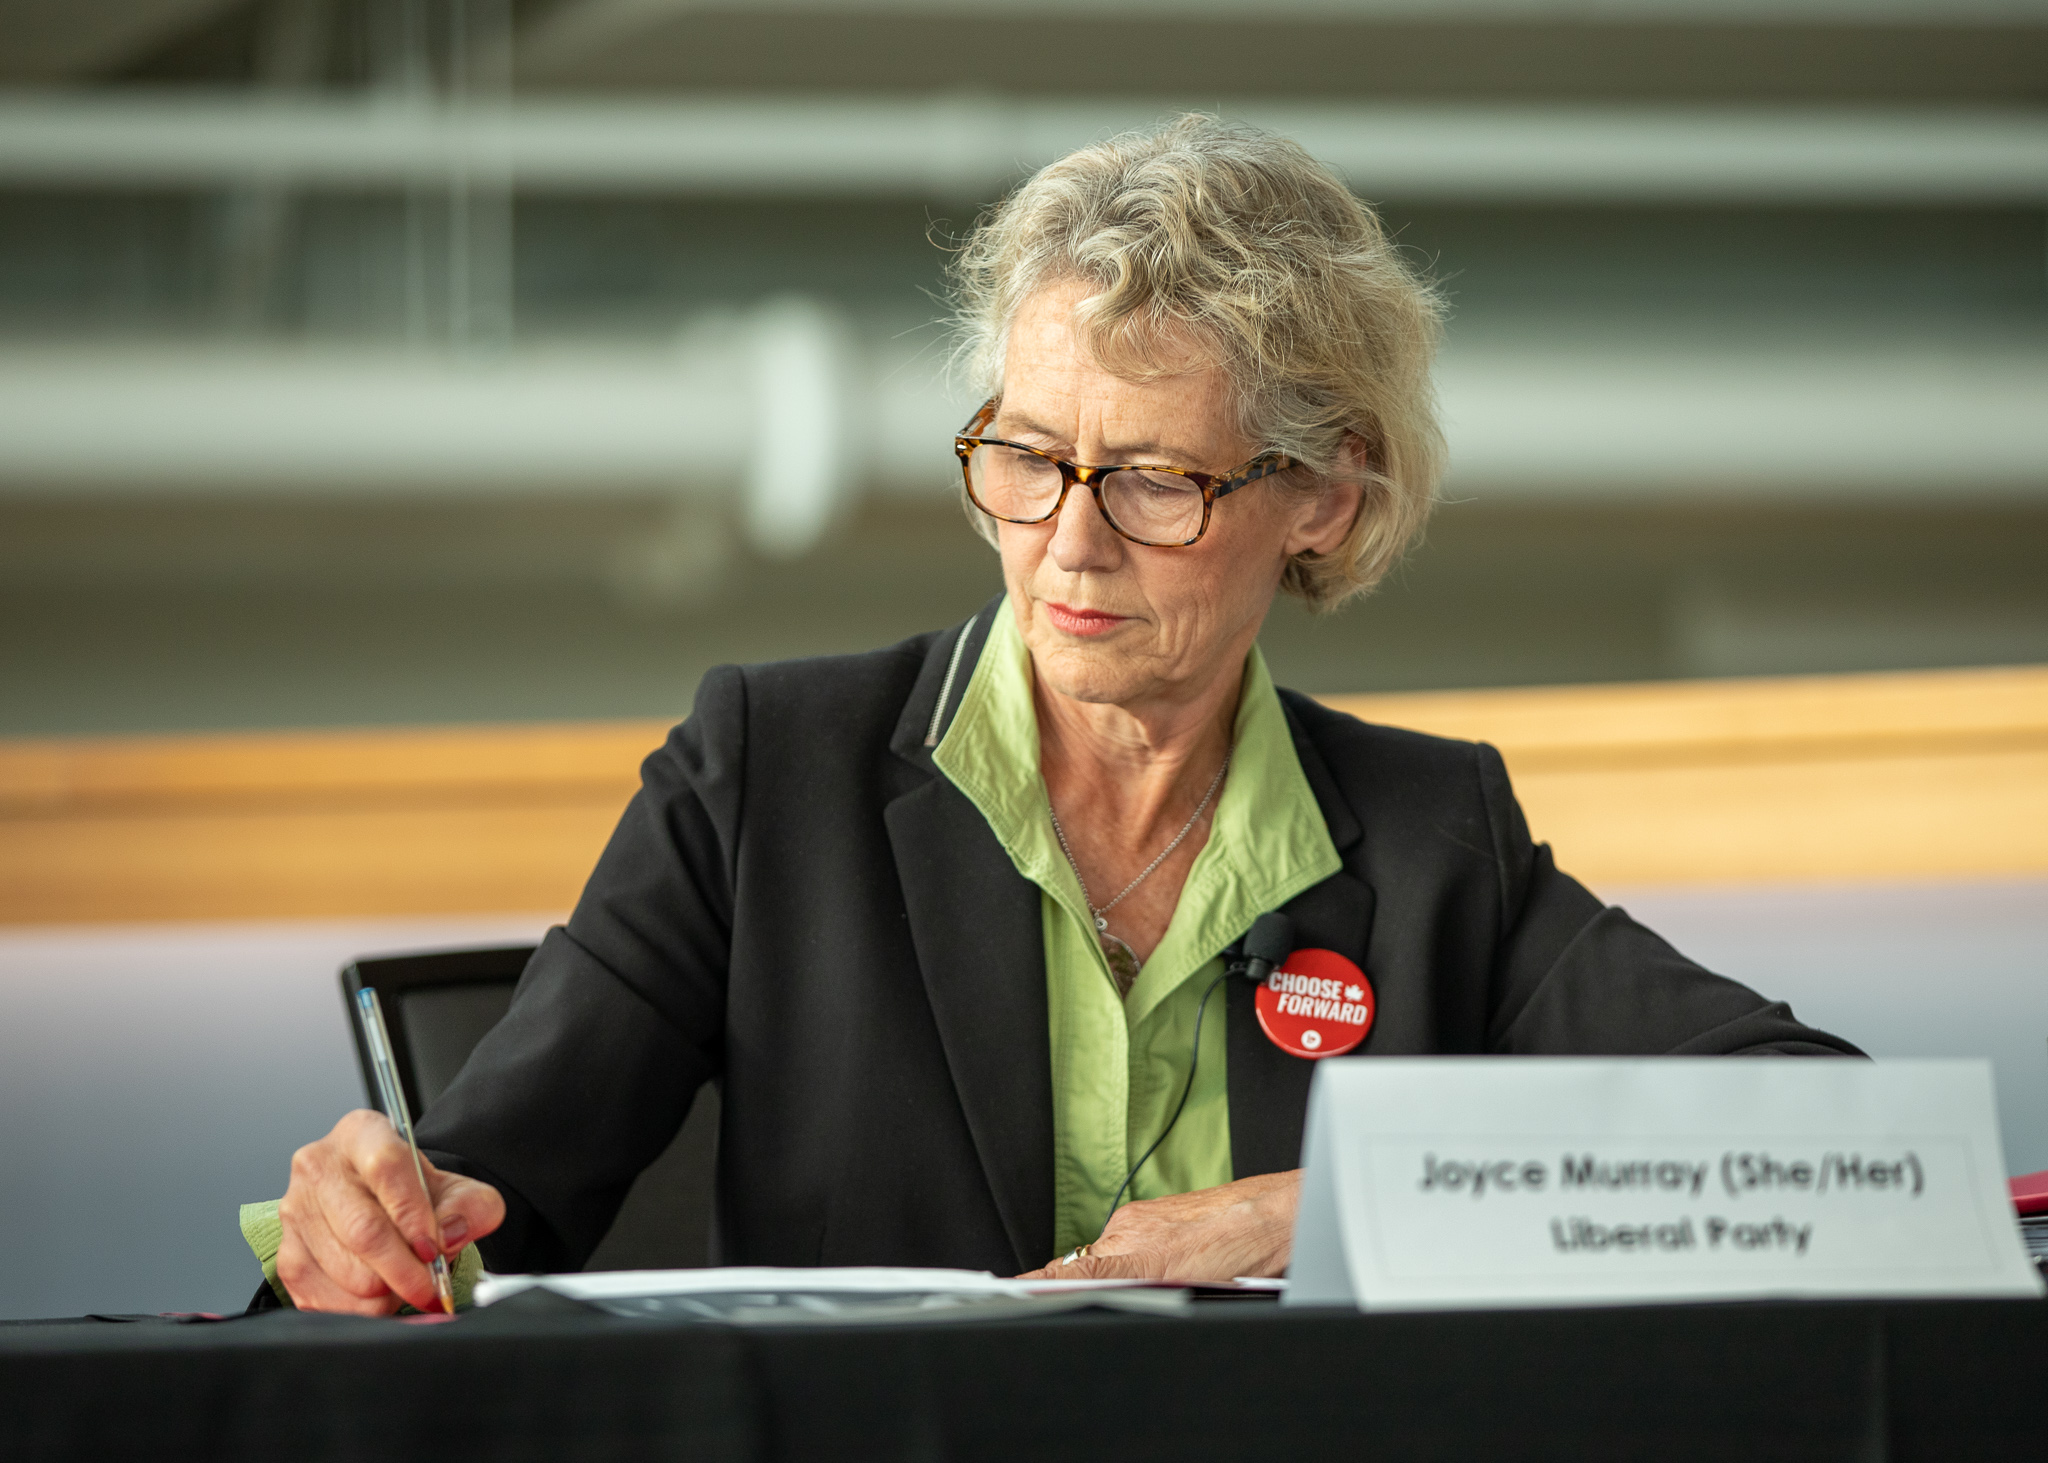 Incumbent candidate Joyce Murray argued that Liberals were still the better and most feasible alternative to Conservatives.